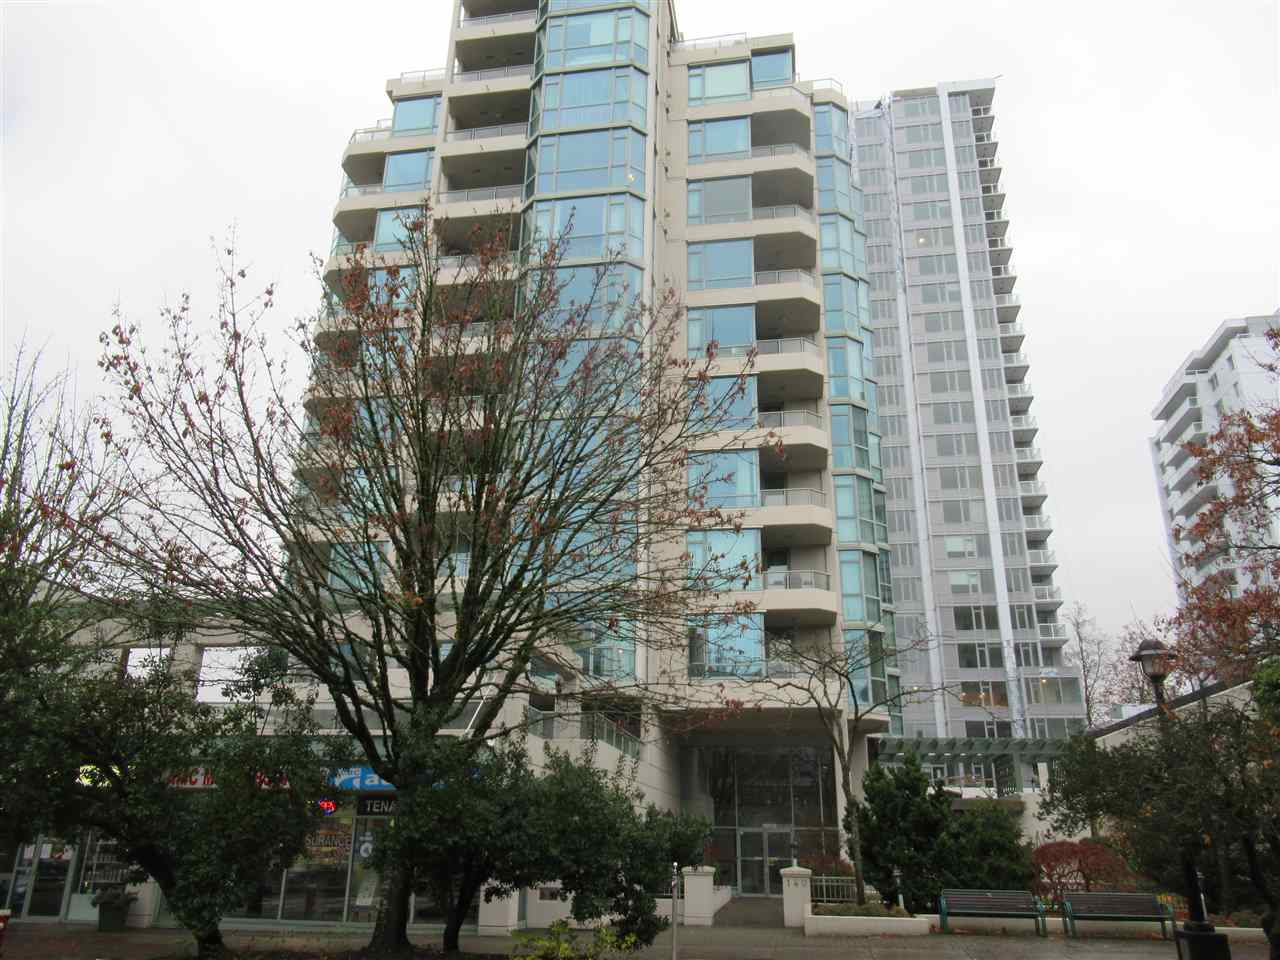 802 140 E 14 STREET - Central Lonsdale Apartment/Condo for sale, 1 Bedroom (R2531399)